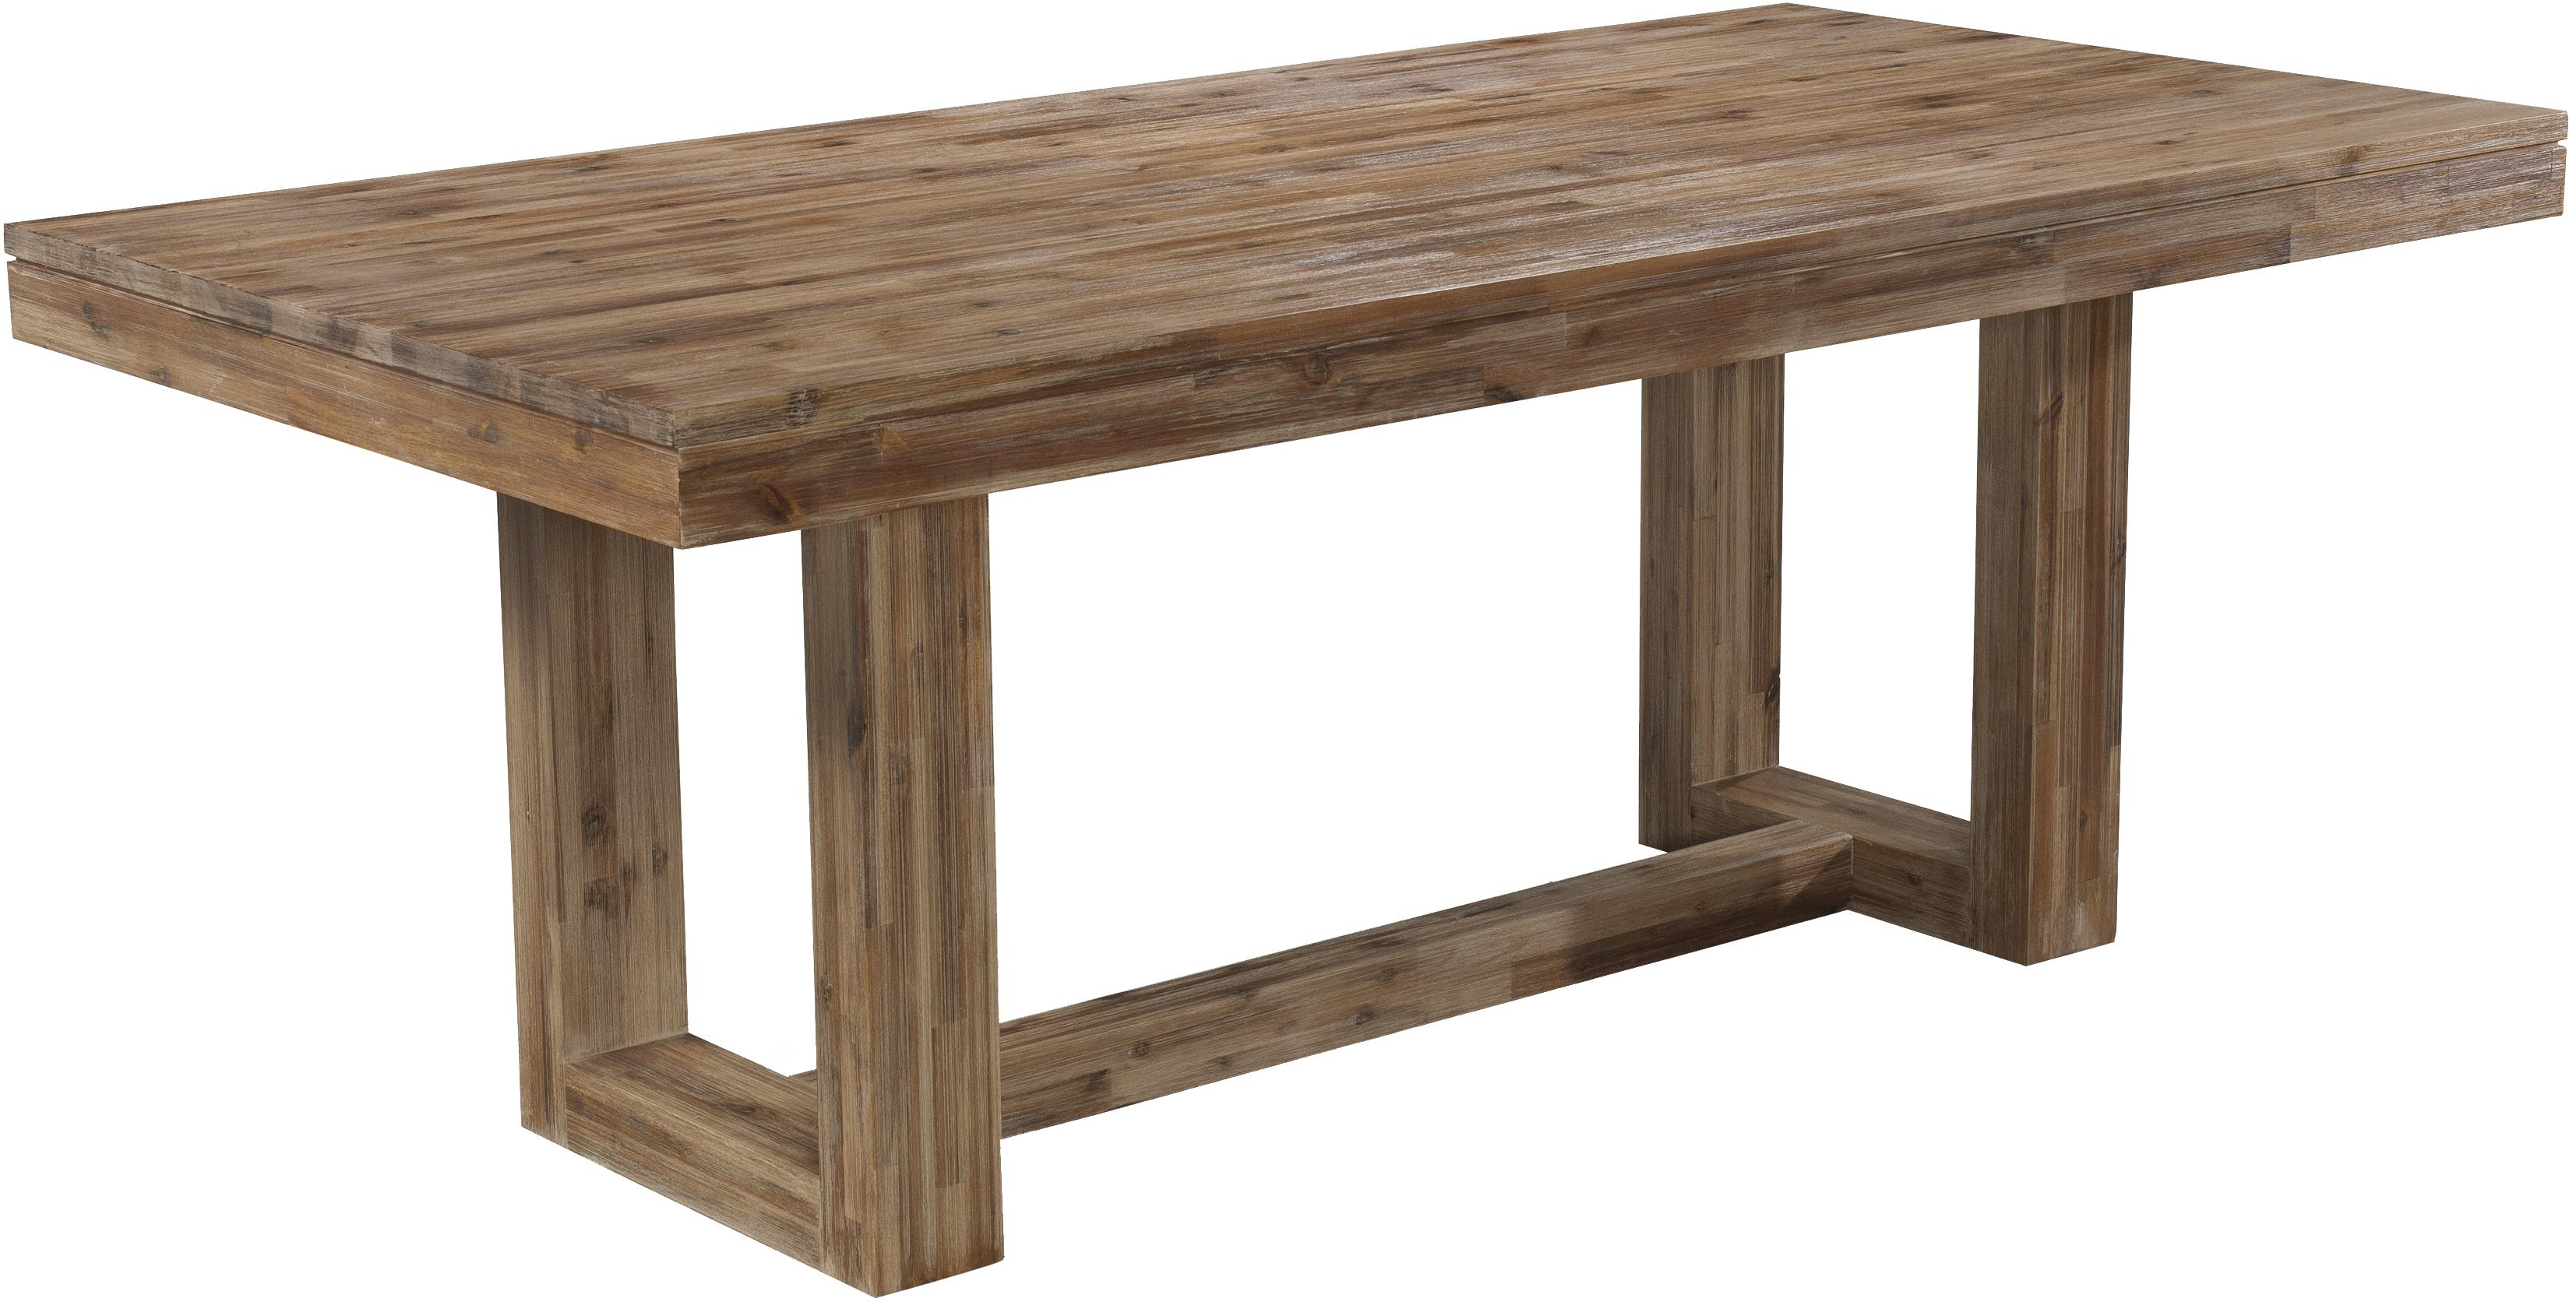 Modern rectangular dining table with rustic trestle base for Contemporary rectangular dining table